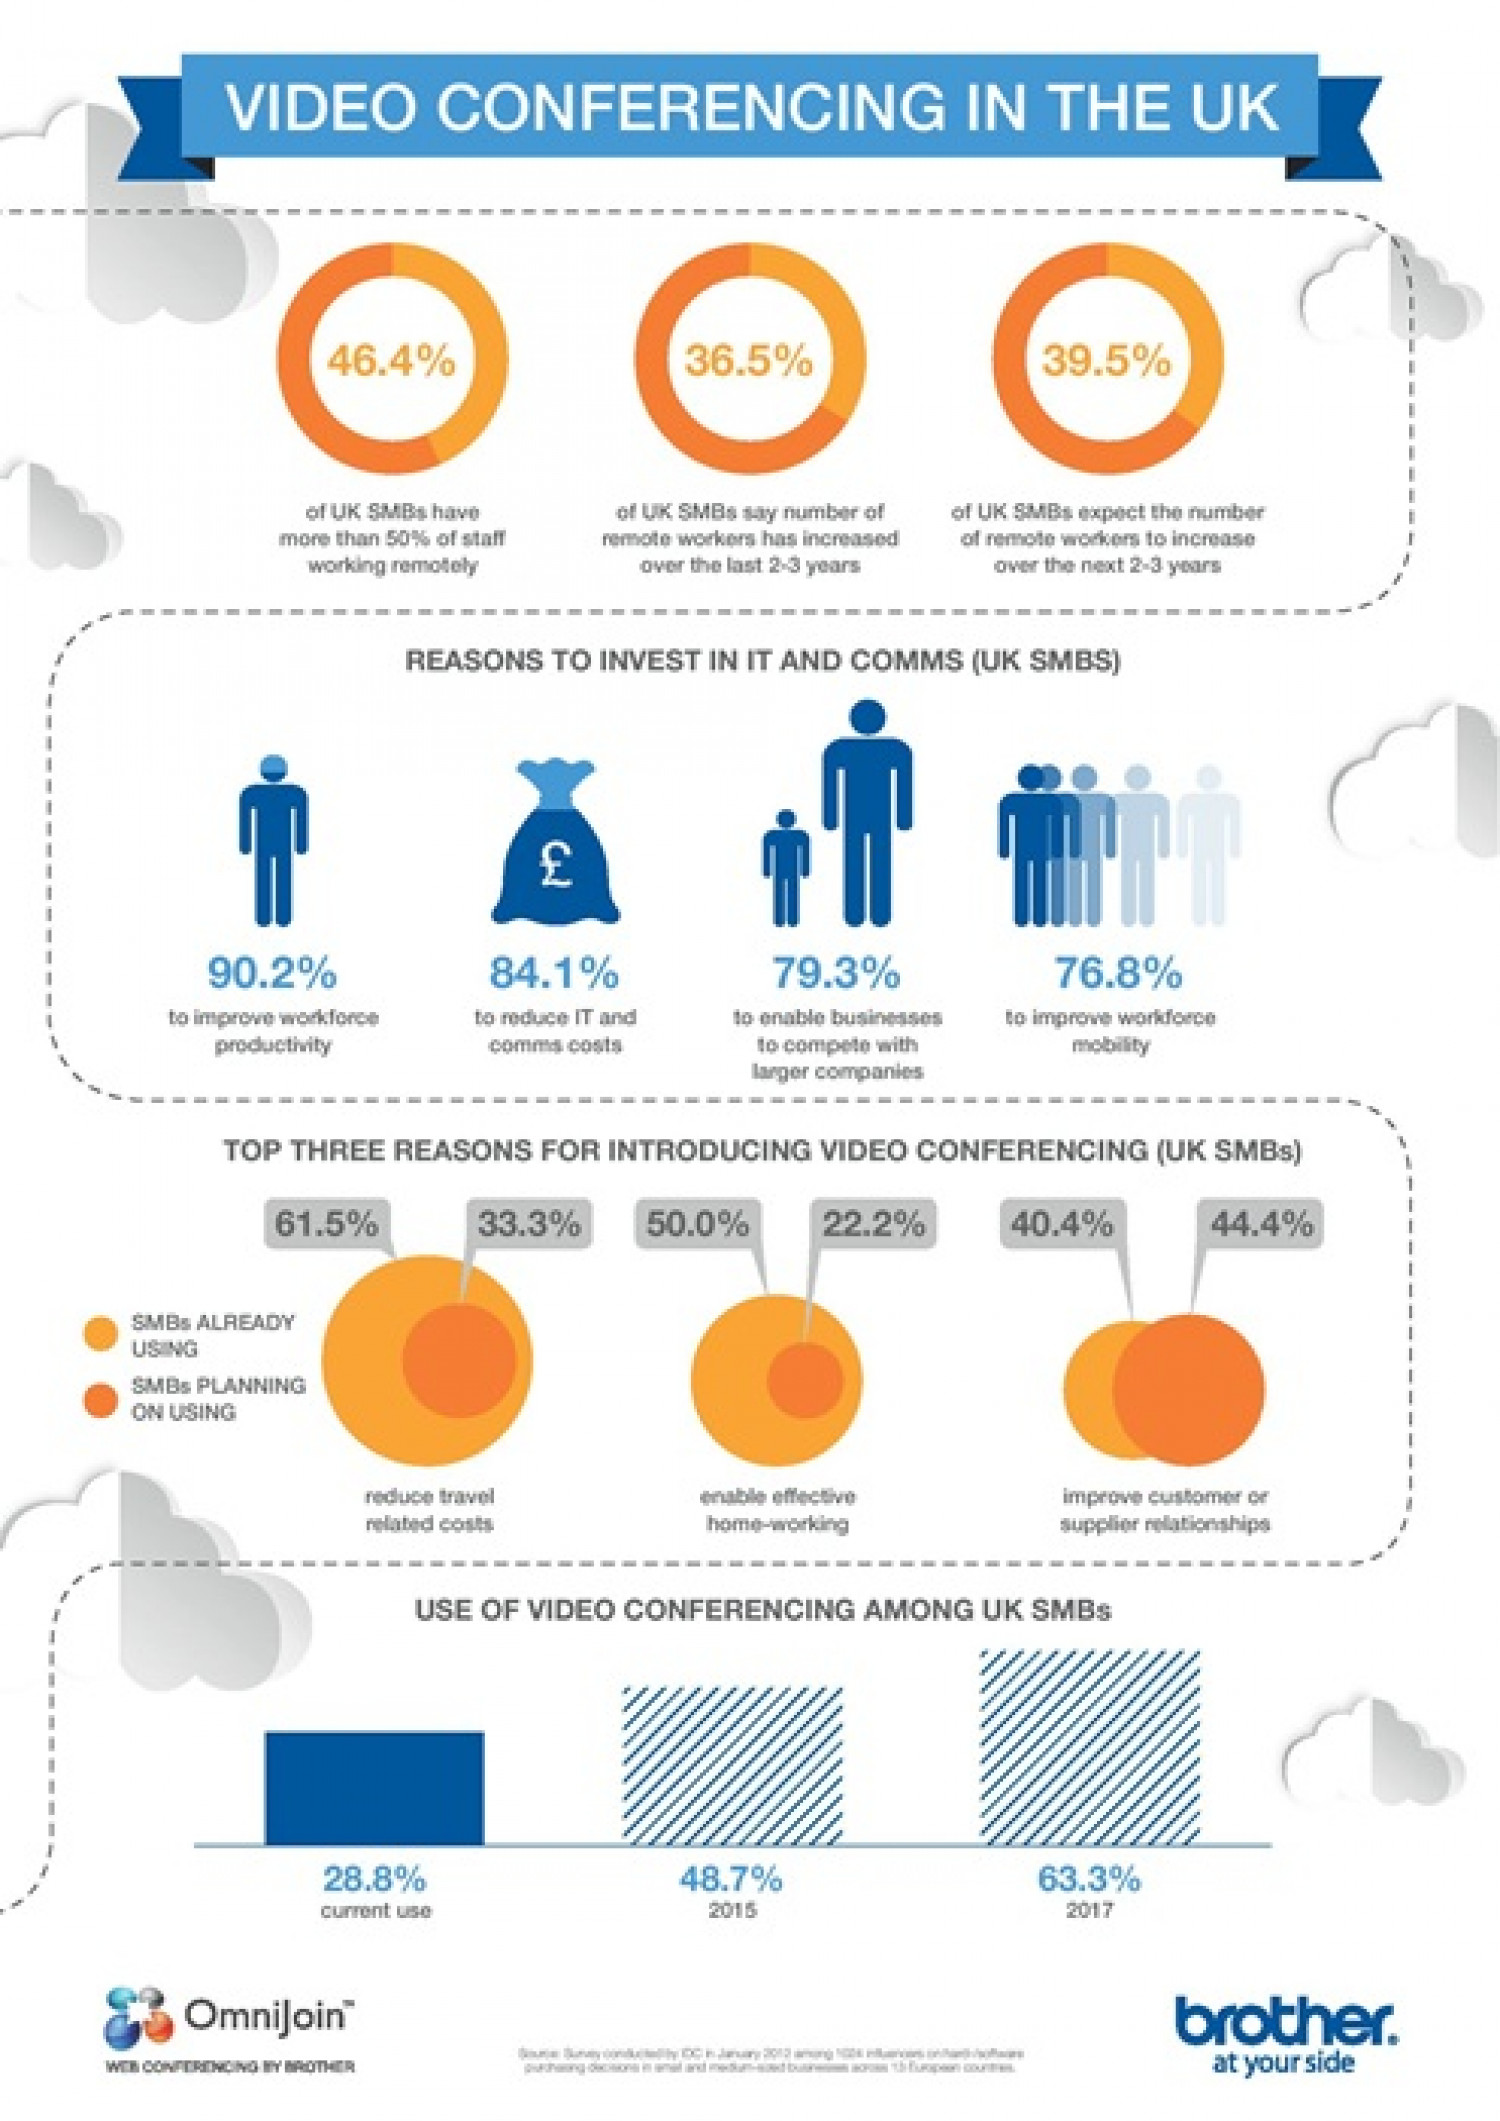 Video Conferencing in the UK Infographic